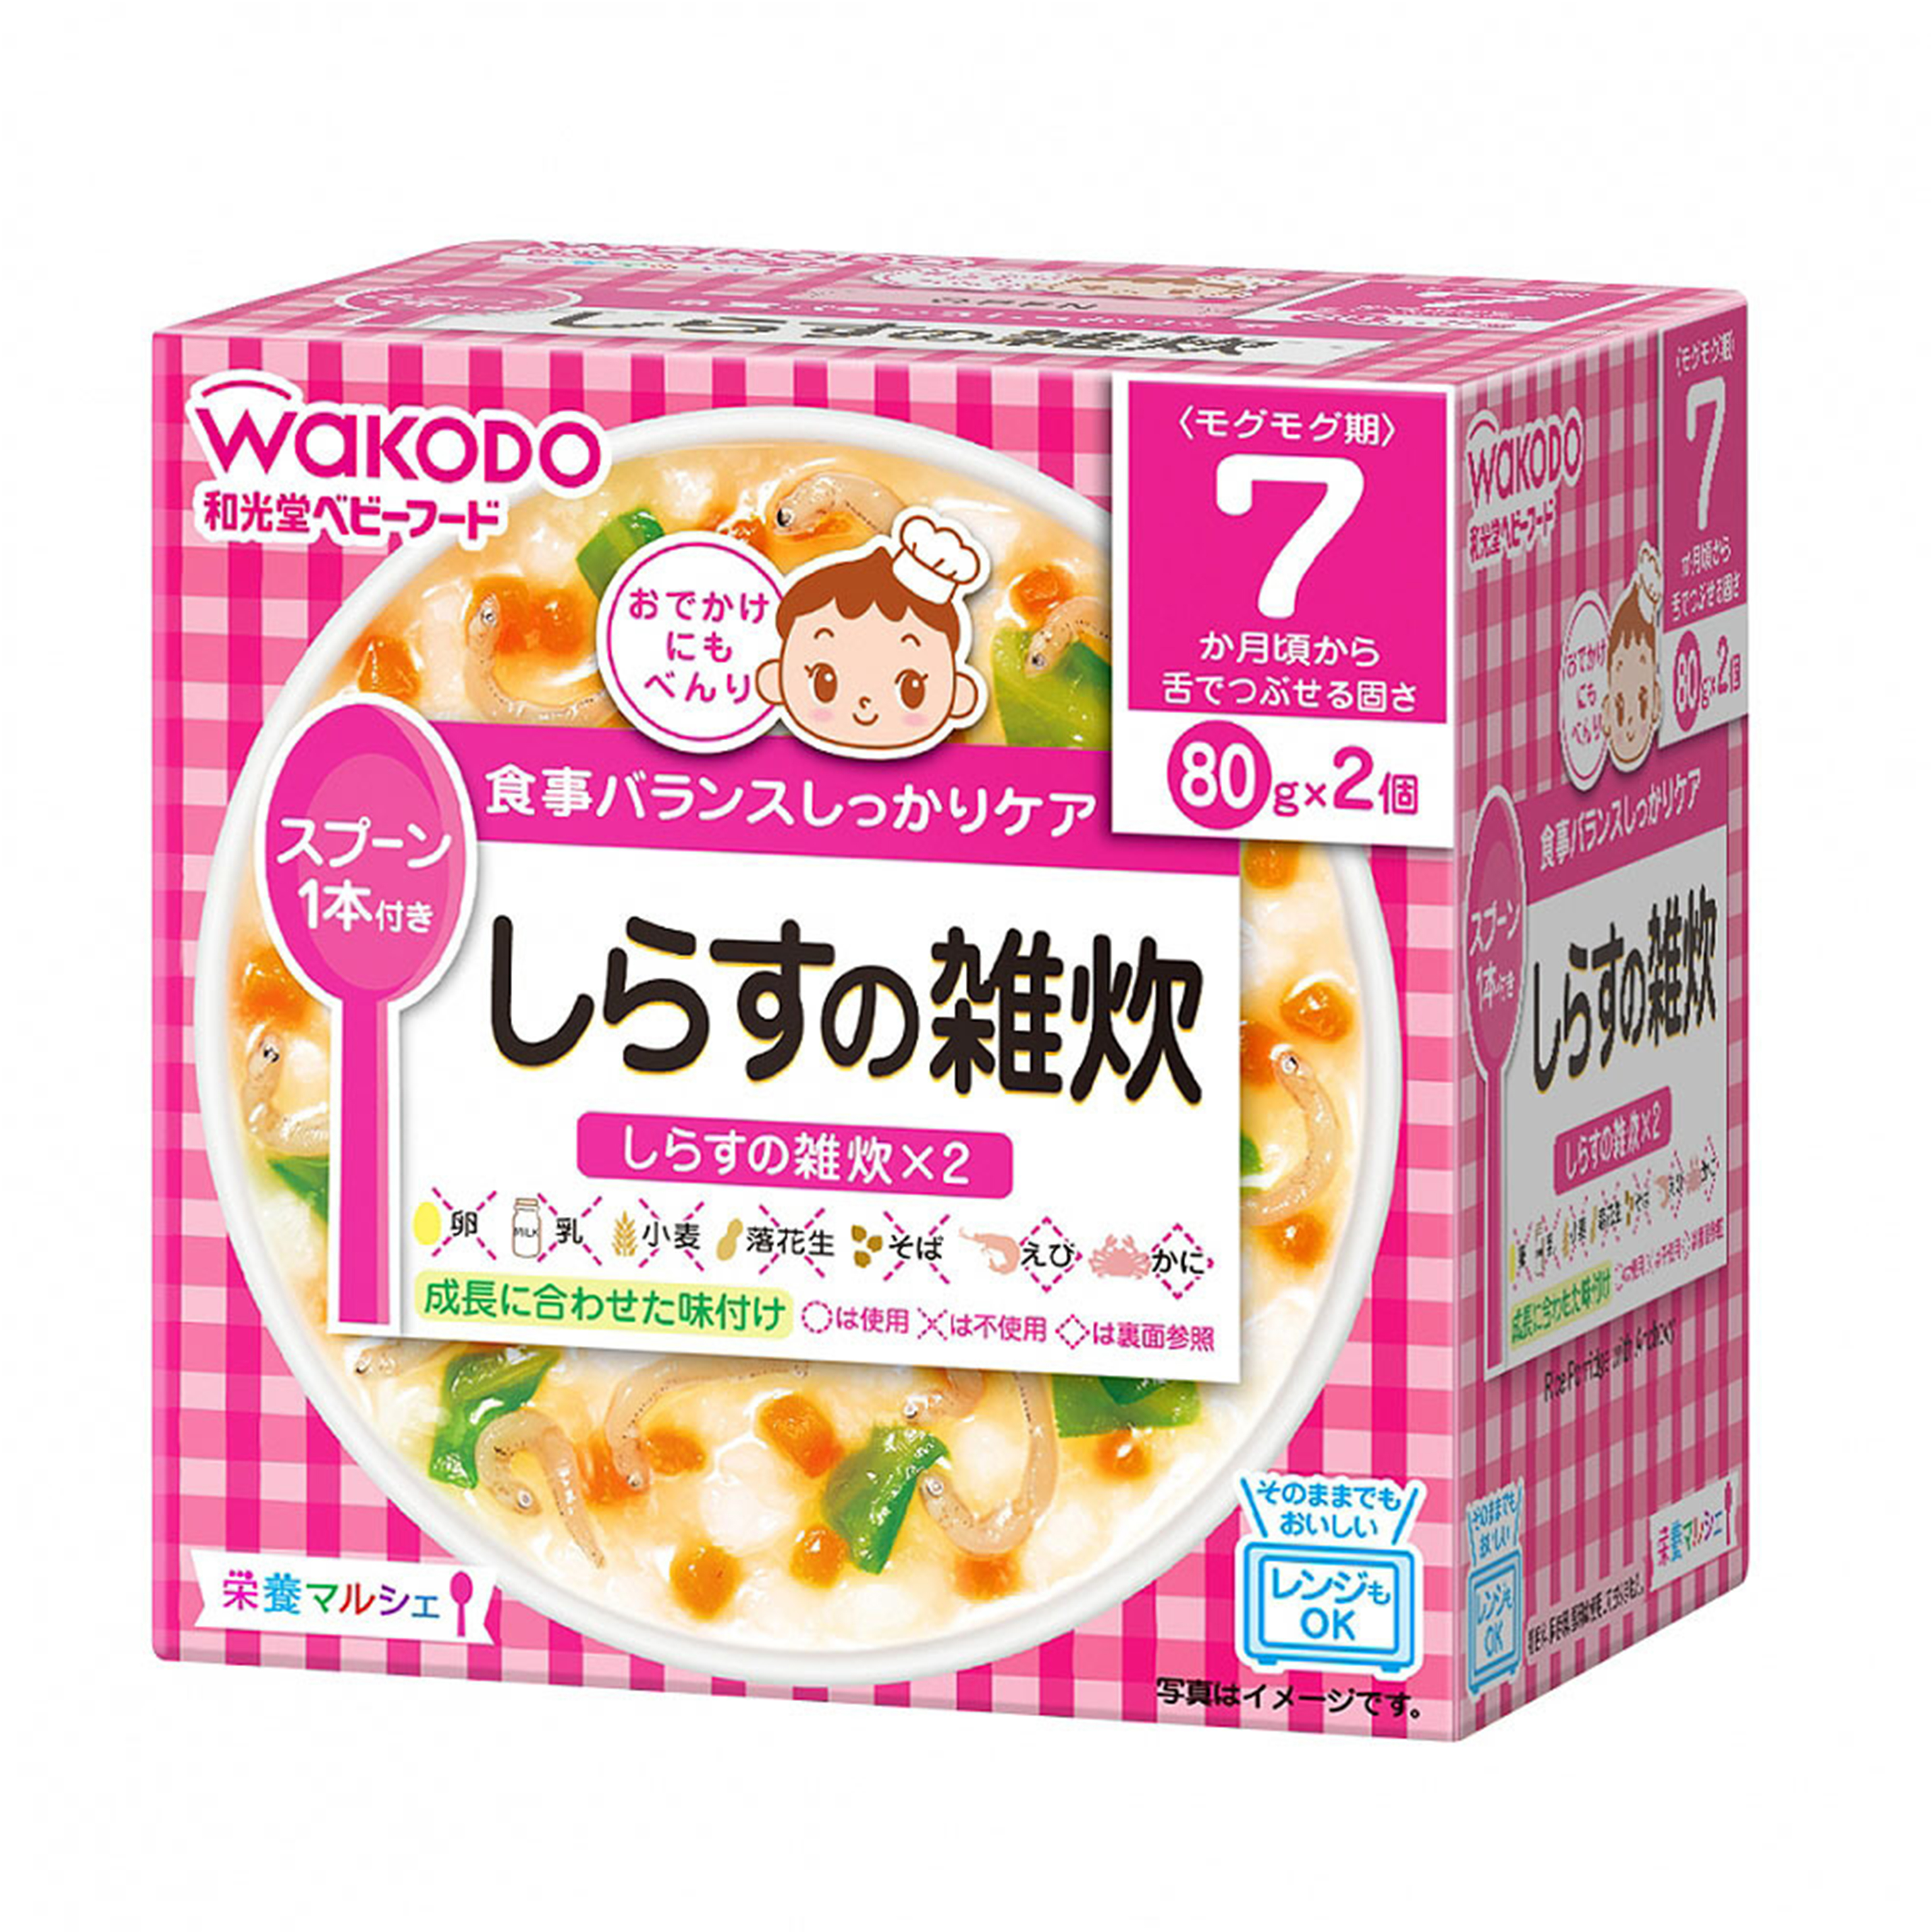 WAKODO Anchovy Rice Porridge 2 Pack (Bundle of 4)